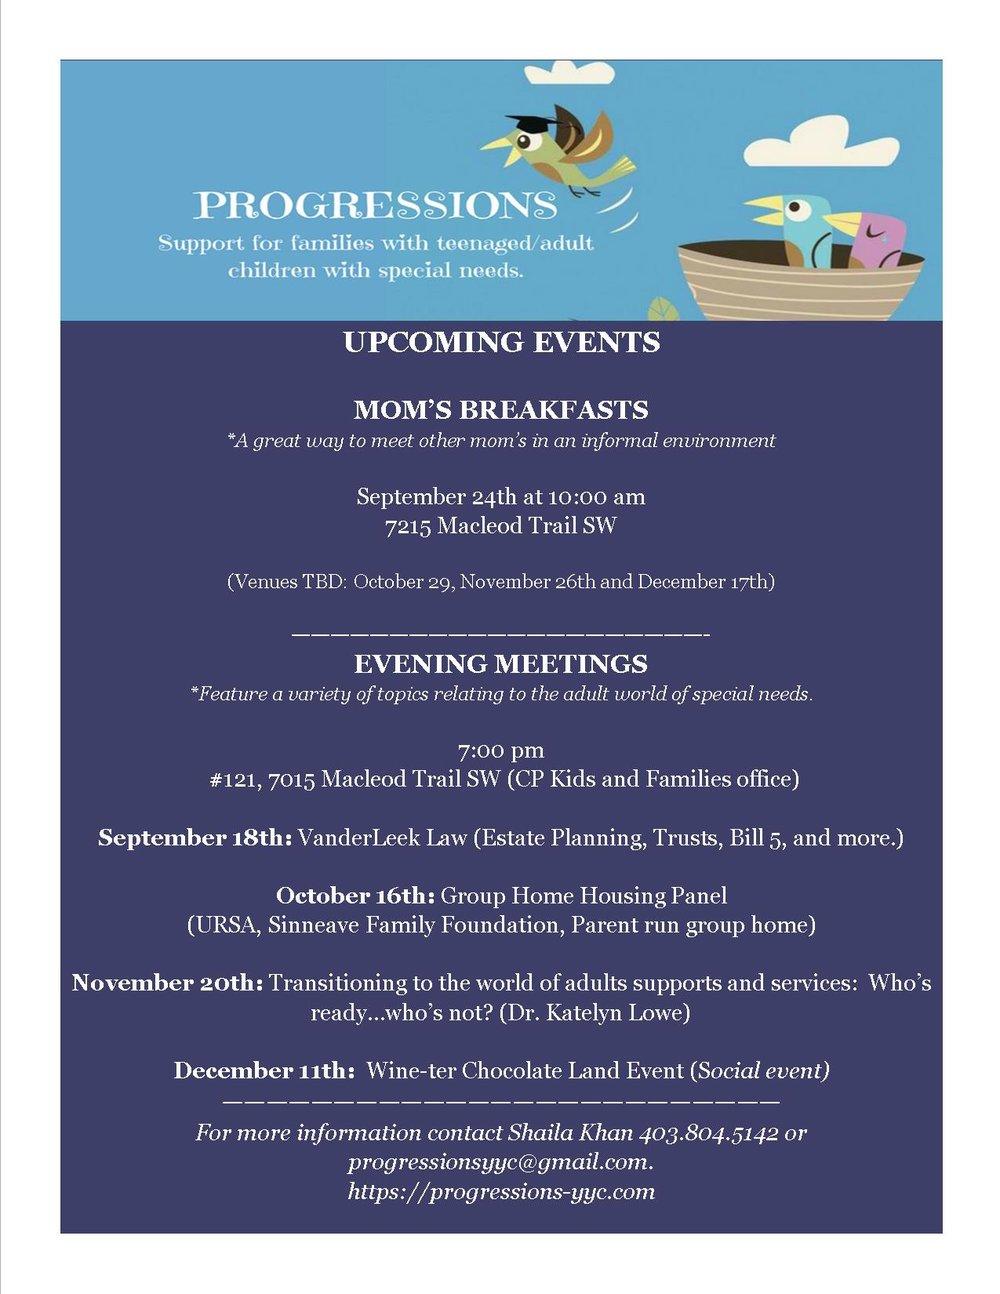 Upcoming Events poster.jpg